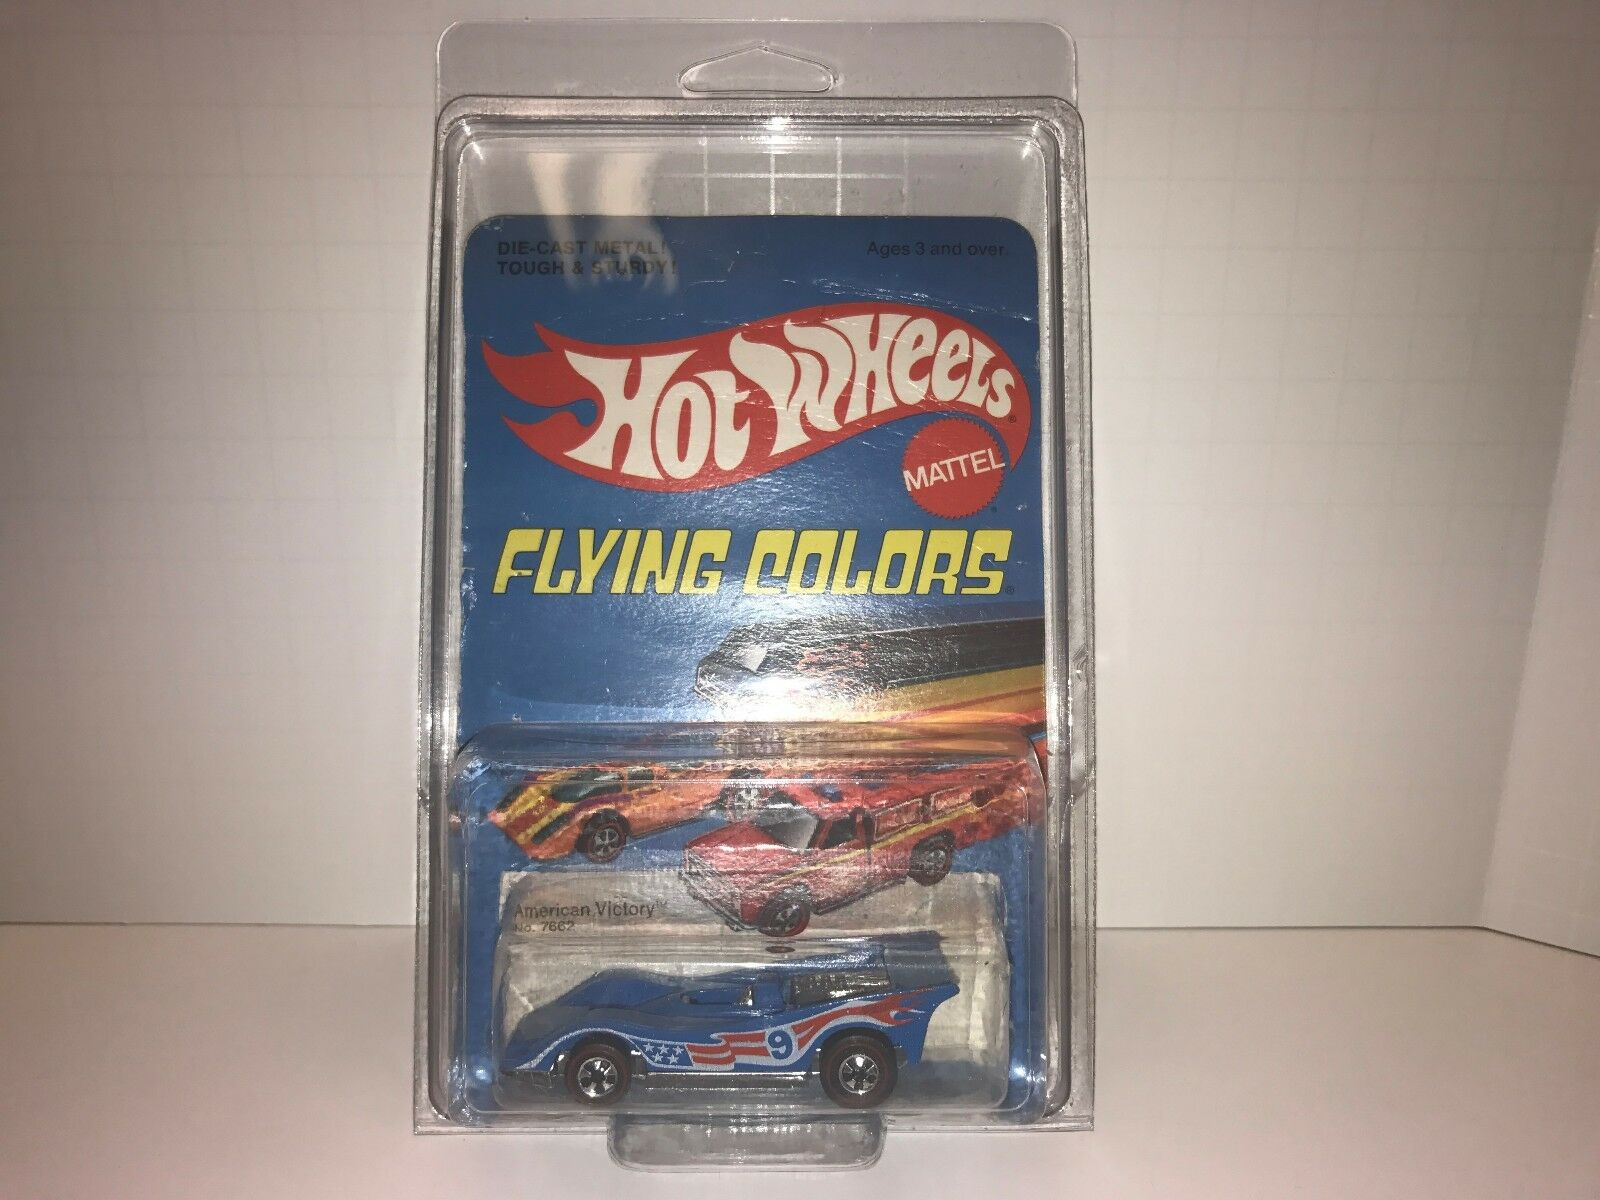 1975 Hot Wheels Flying Farbes rotline American Victory